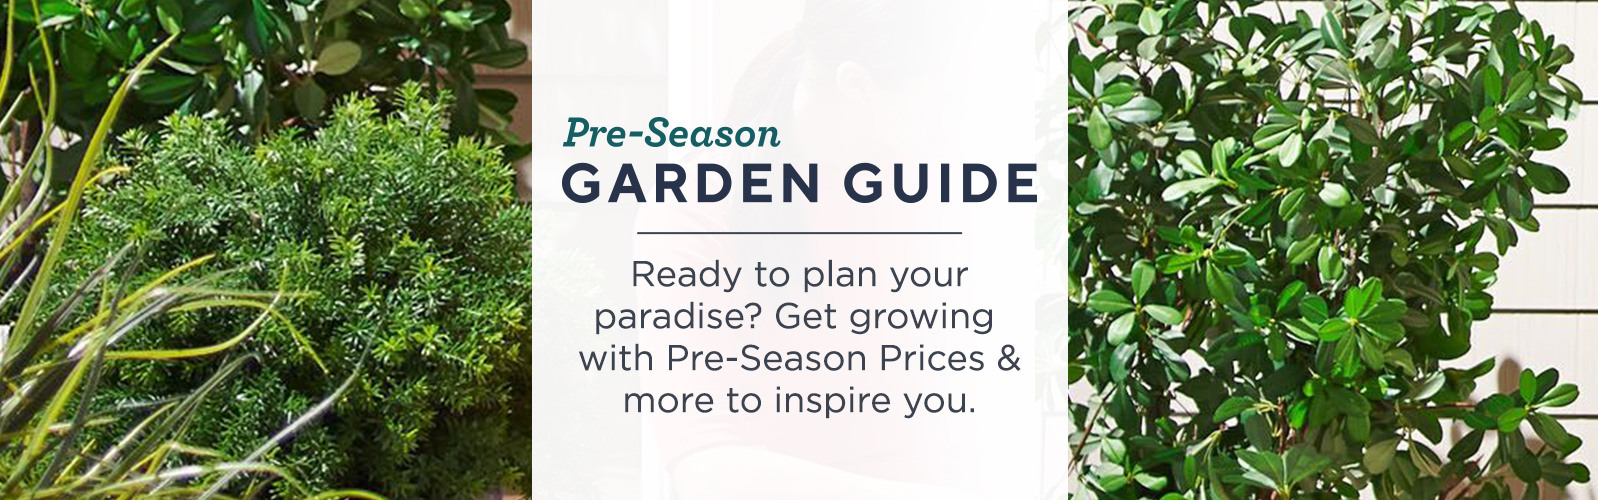 Pre-Season Garden Guide — Ready to plan your paradise? Get growing with Pre-Season Prices & more to inspire you.